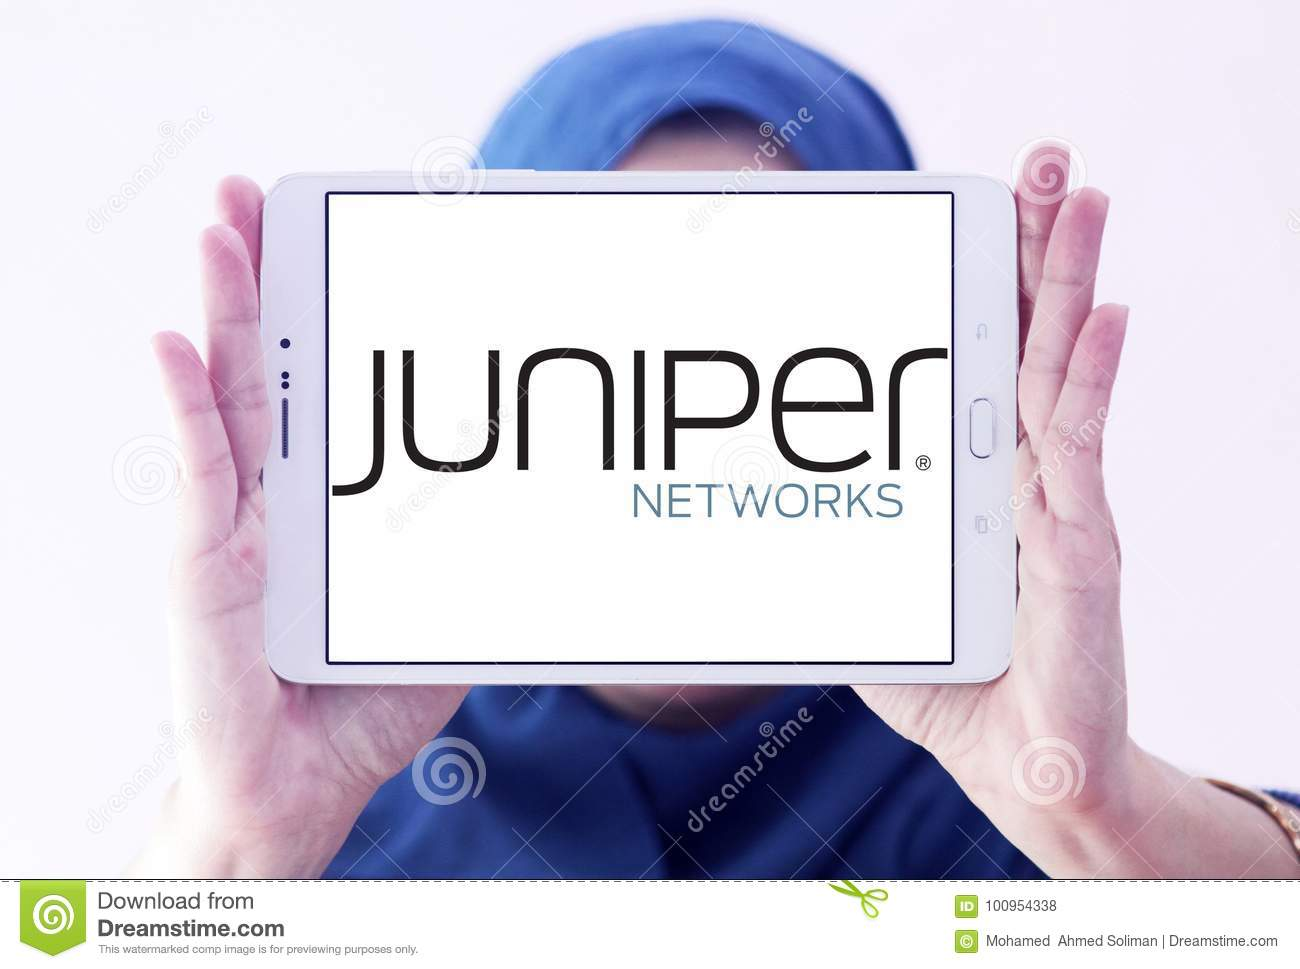 Juniper Networks Company Logo Editorial Stock Photo - Image of icons